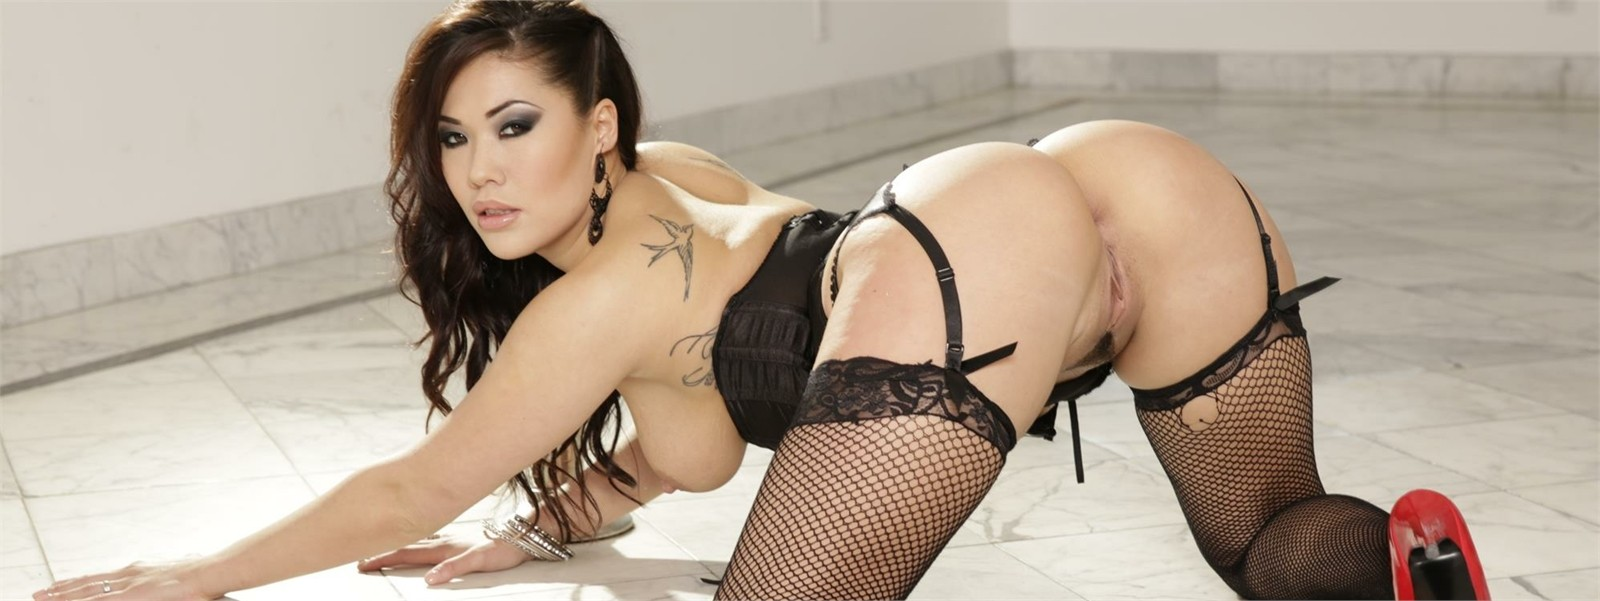 London Keyes Hero Image